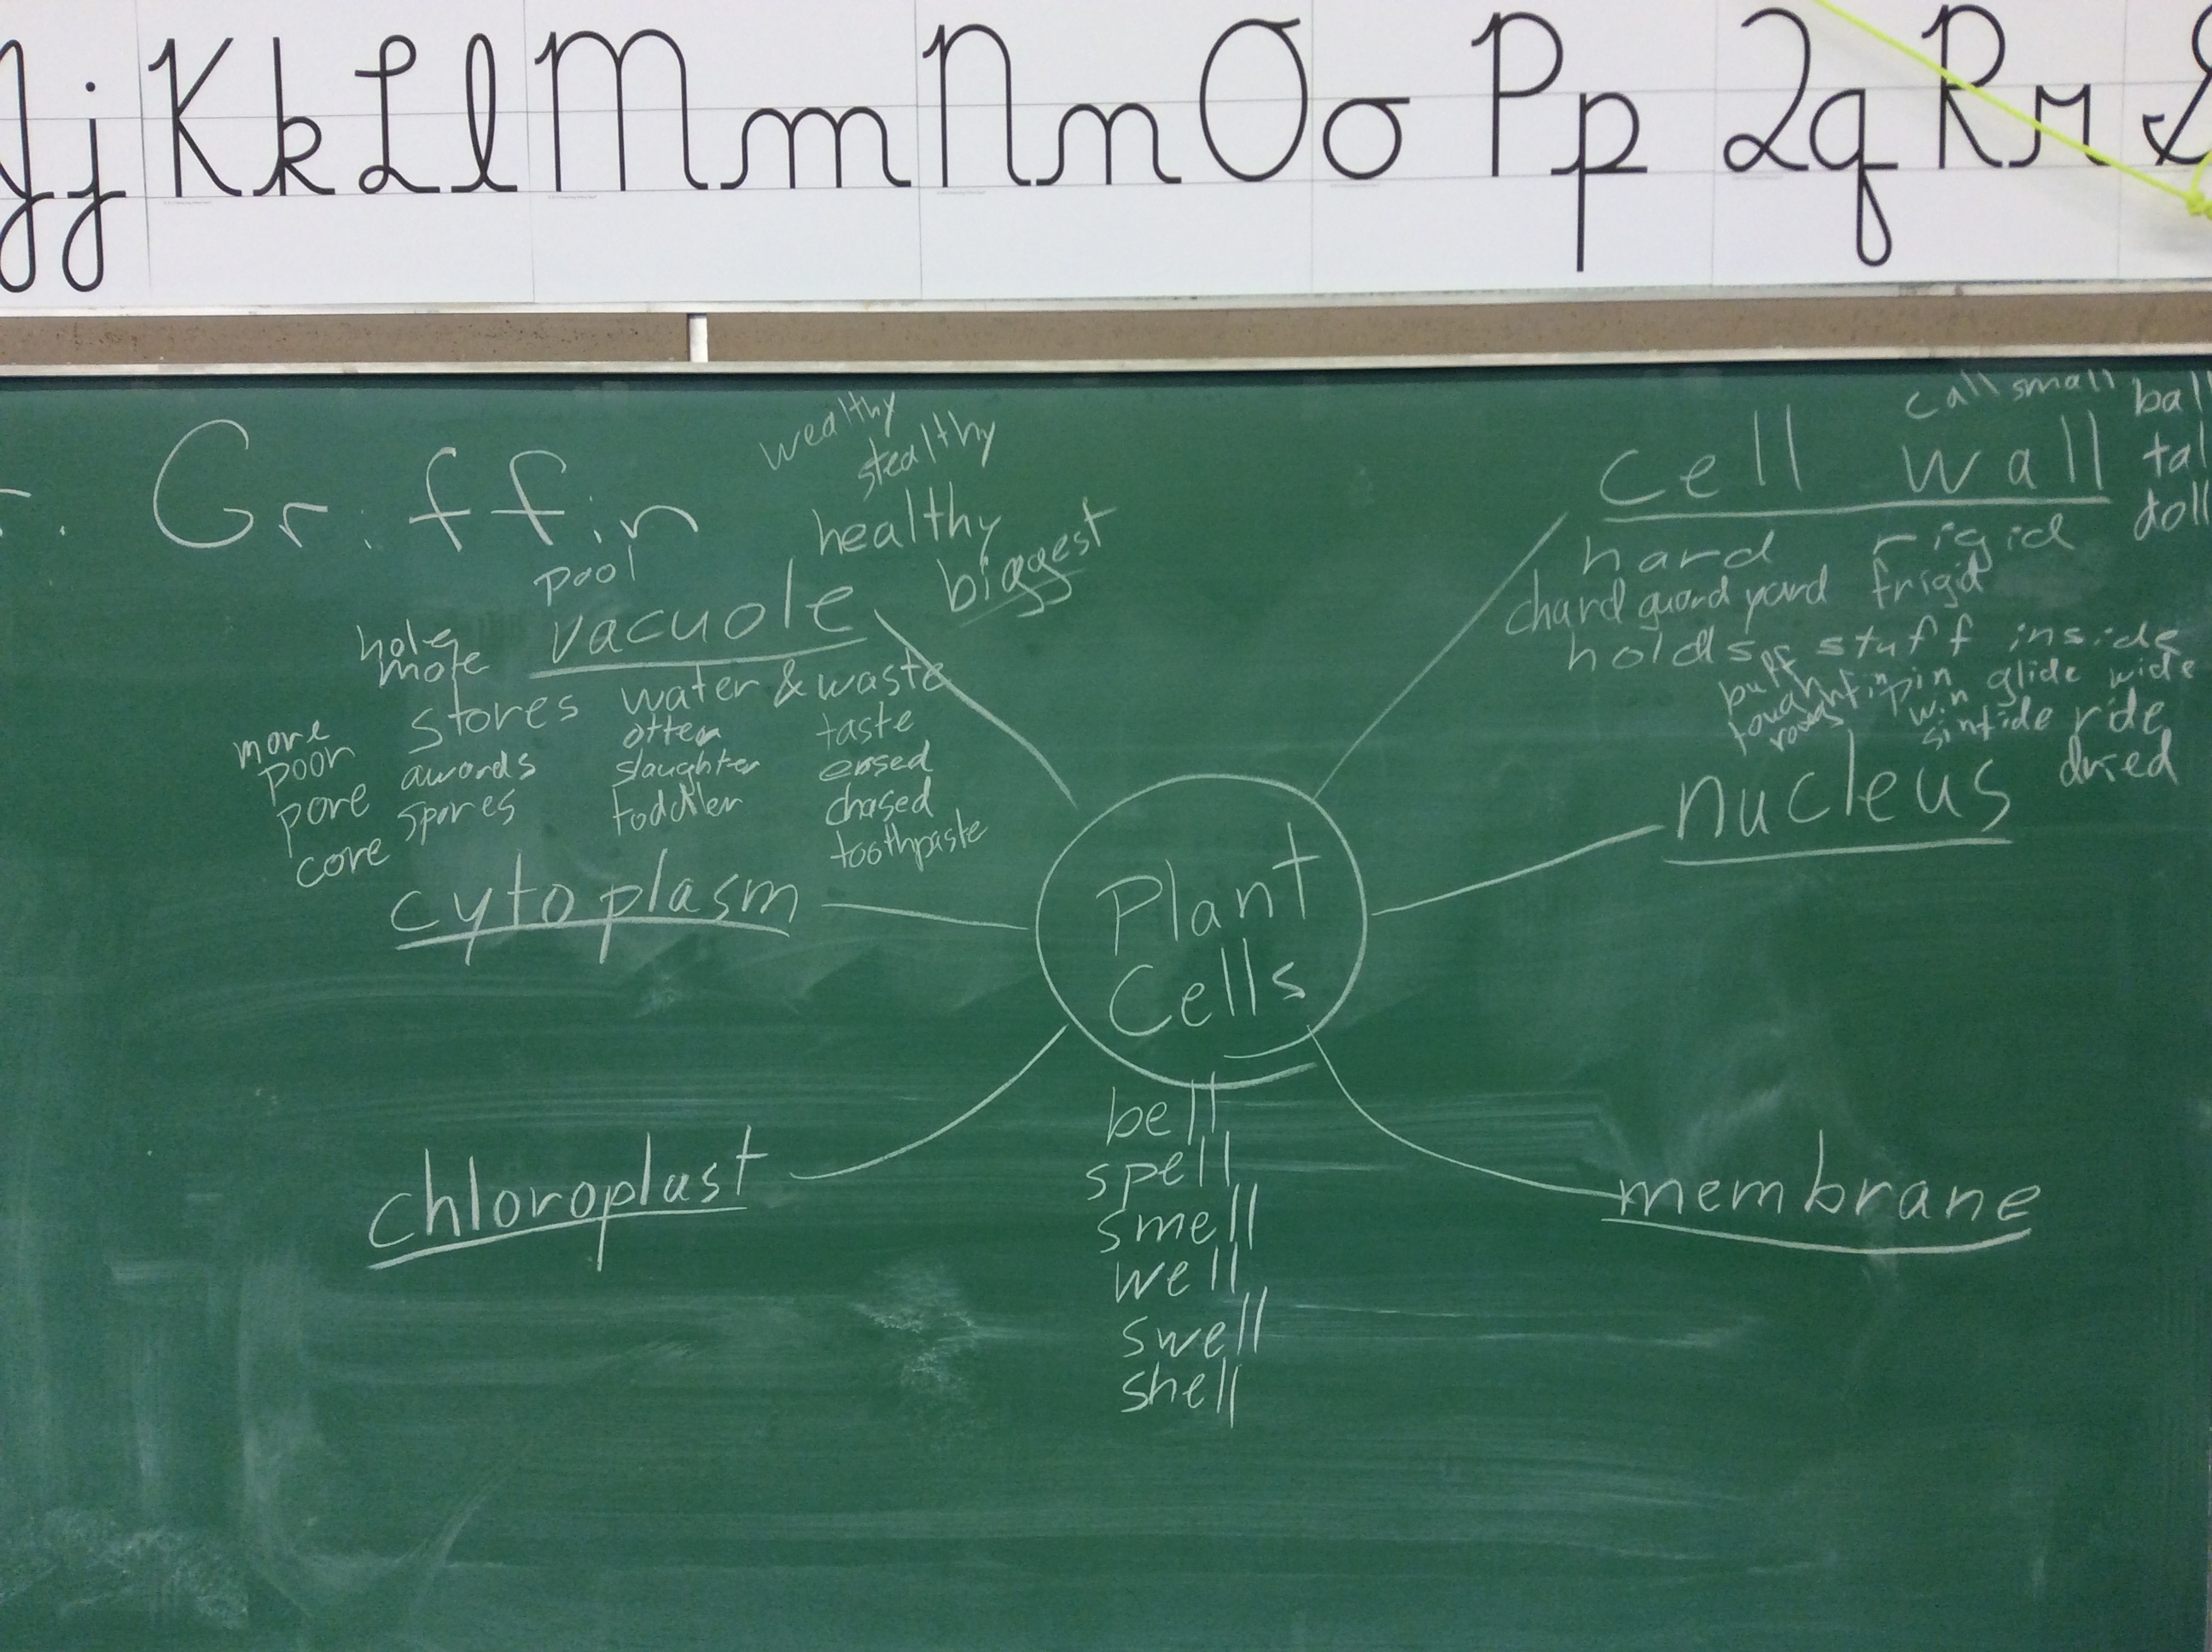 Brainstorming for a song about plant cells.